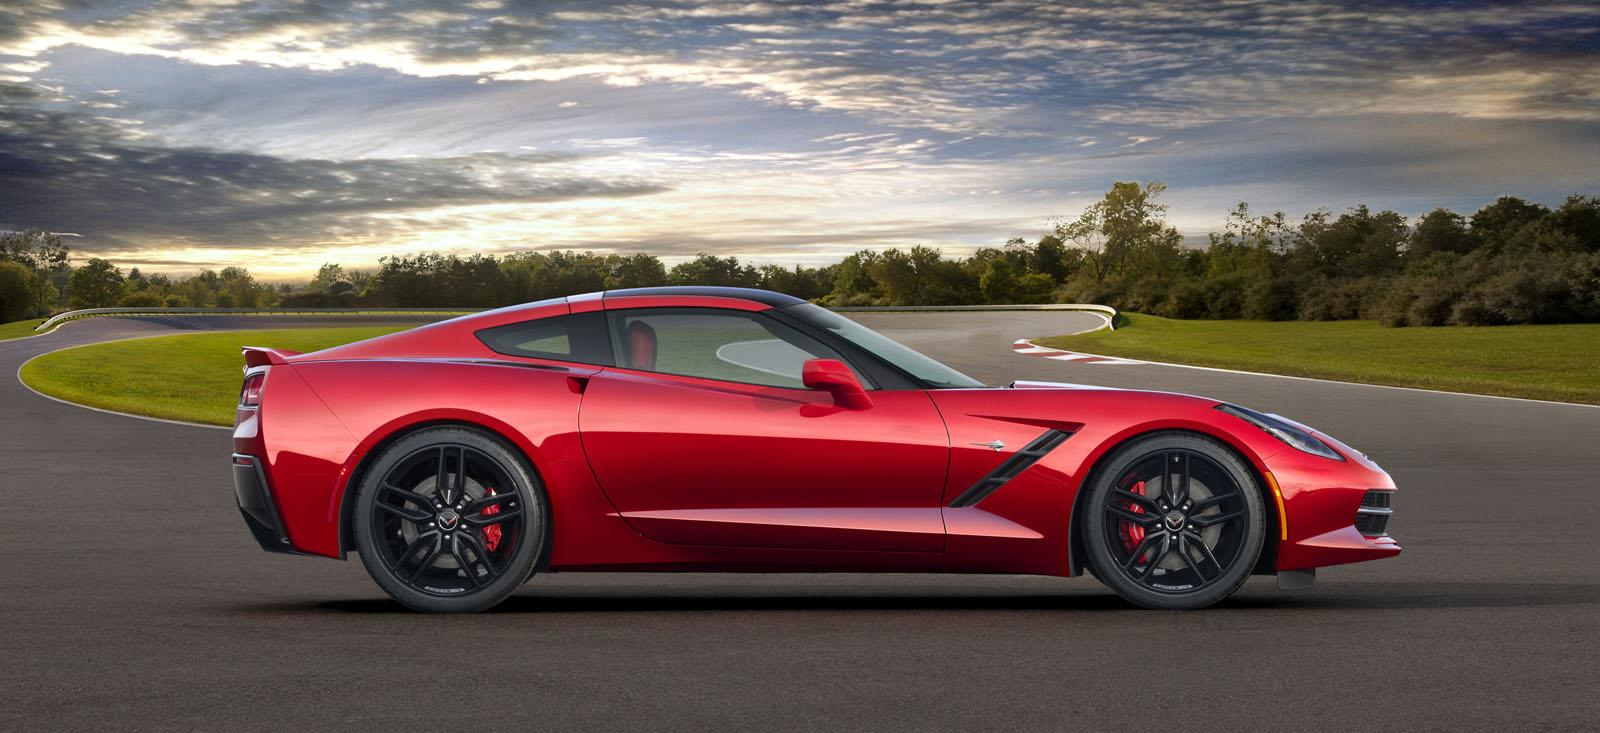 2014-Chevrolet-Corvette-Stingray-C7-3